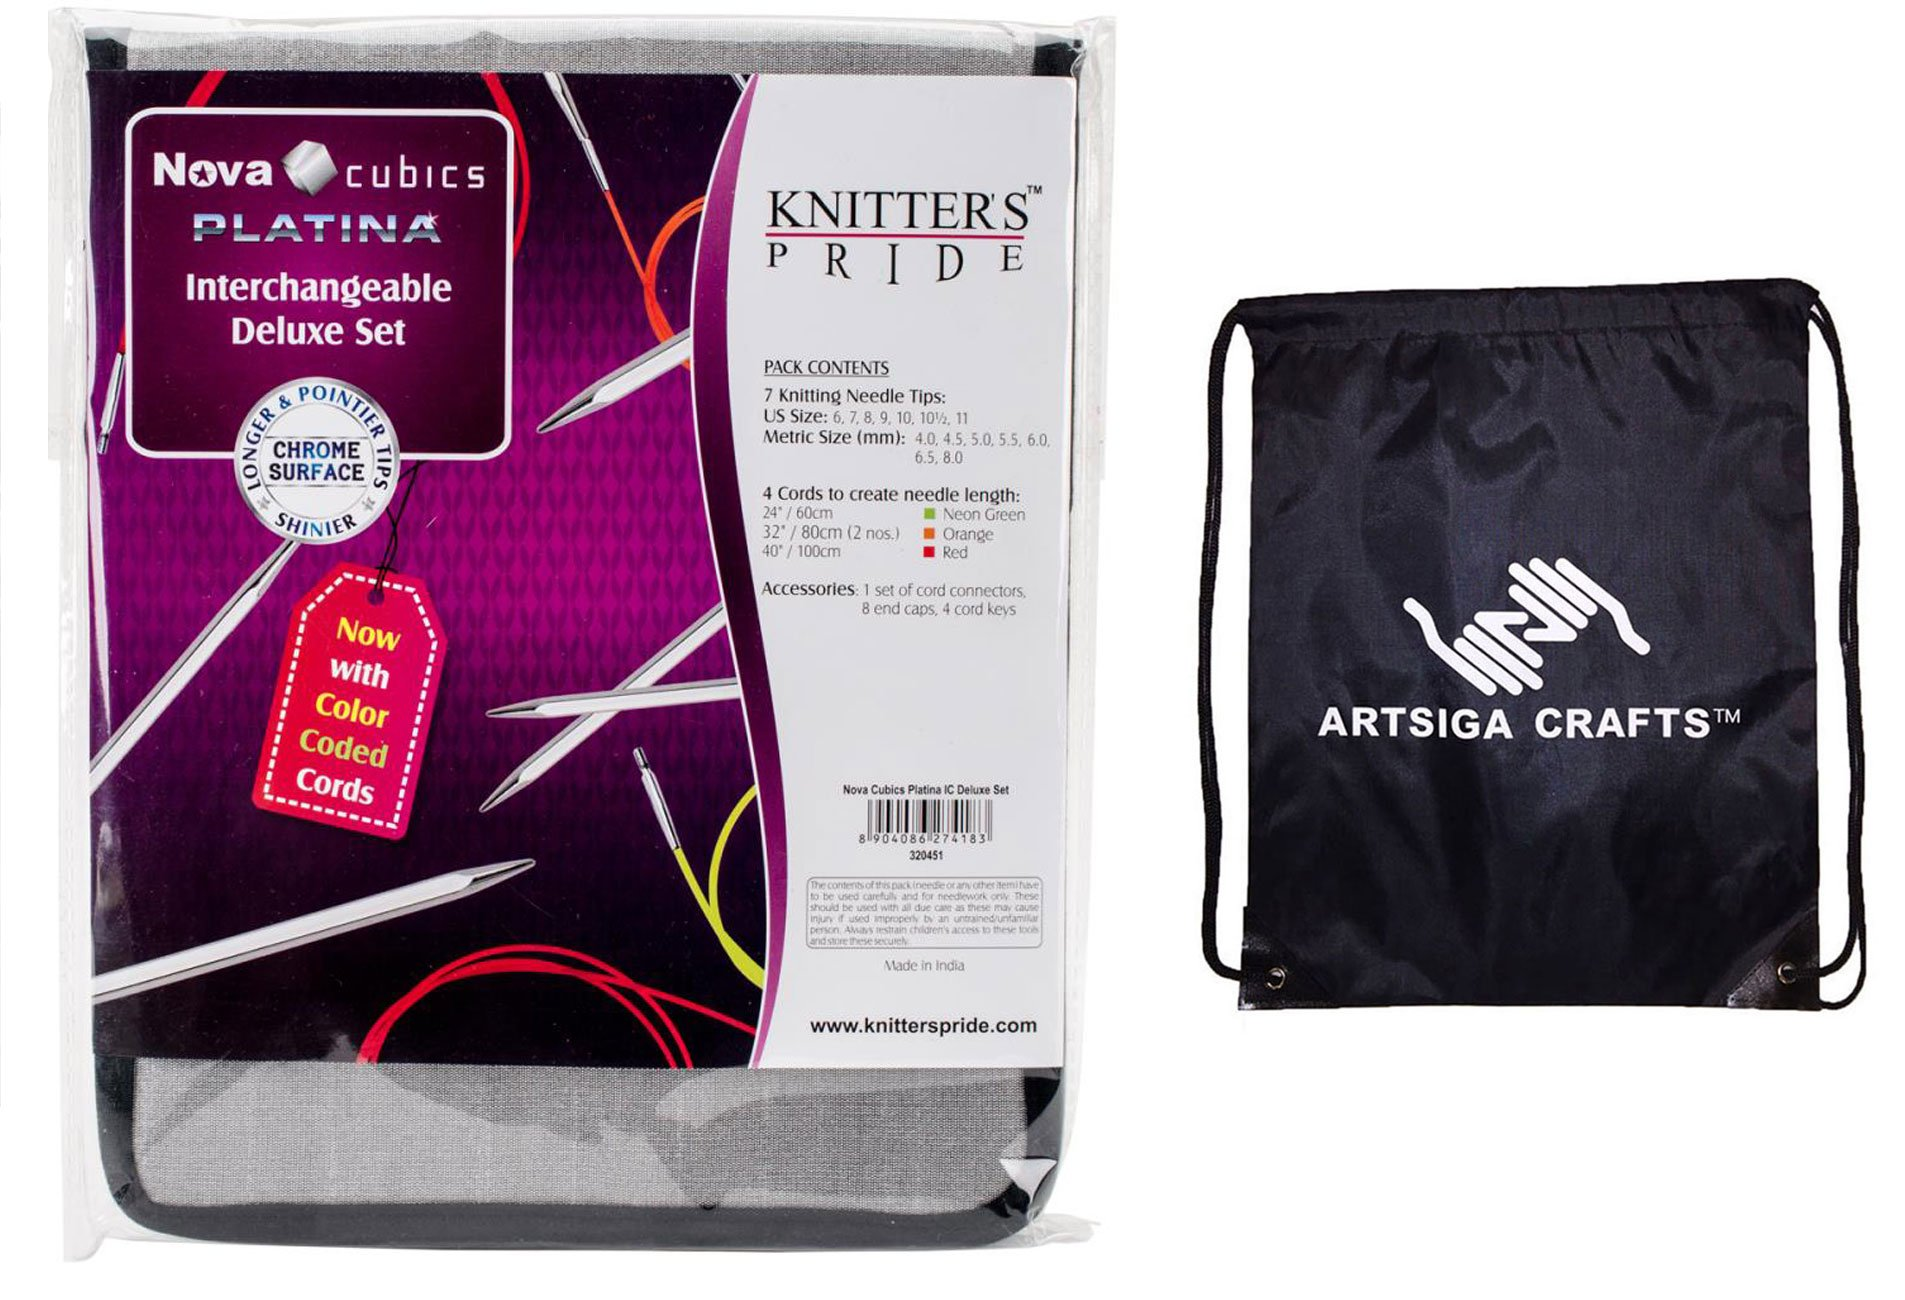 Knitter's Pride Nova Cubics Platina Deluxe Interchangeable Tip Knitting Needles Set Deluxe Set (Normal IC) Bundle with 1 Artsiga Crafts Project Bag 320451